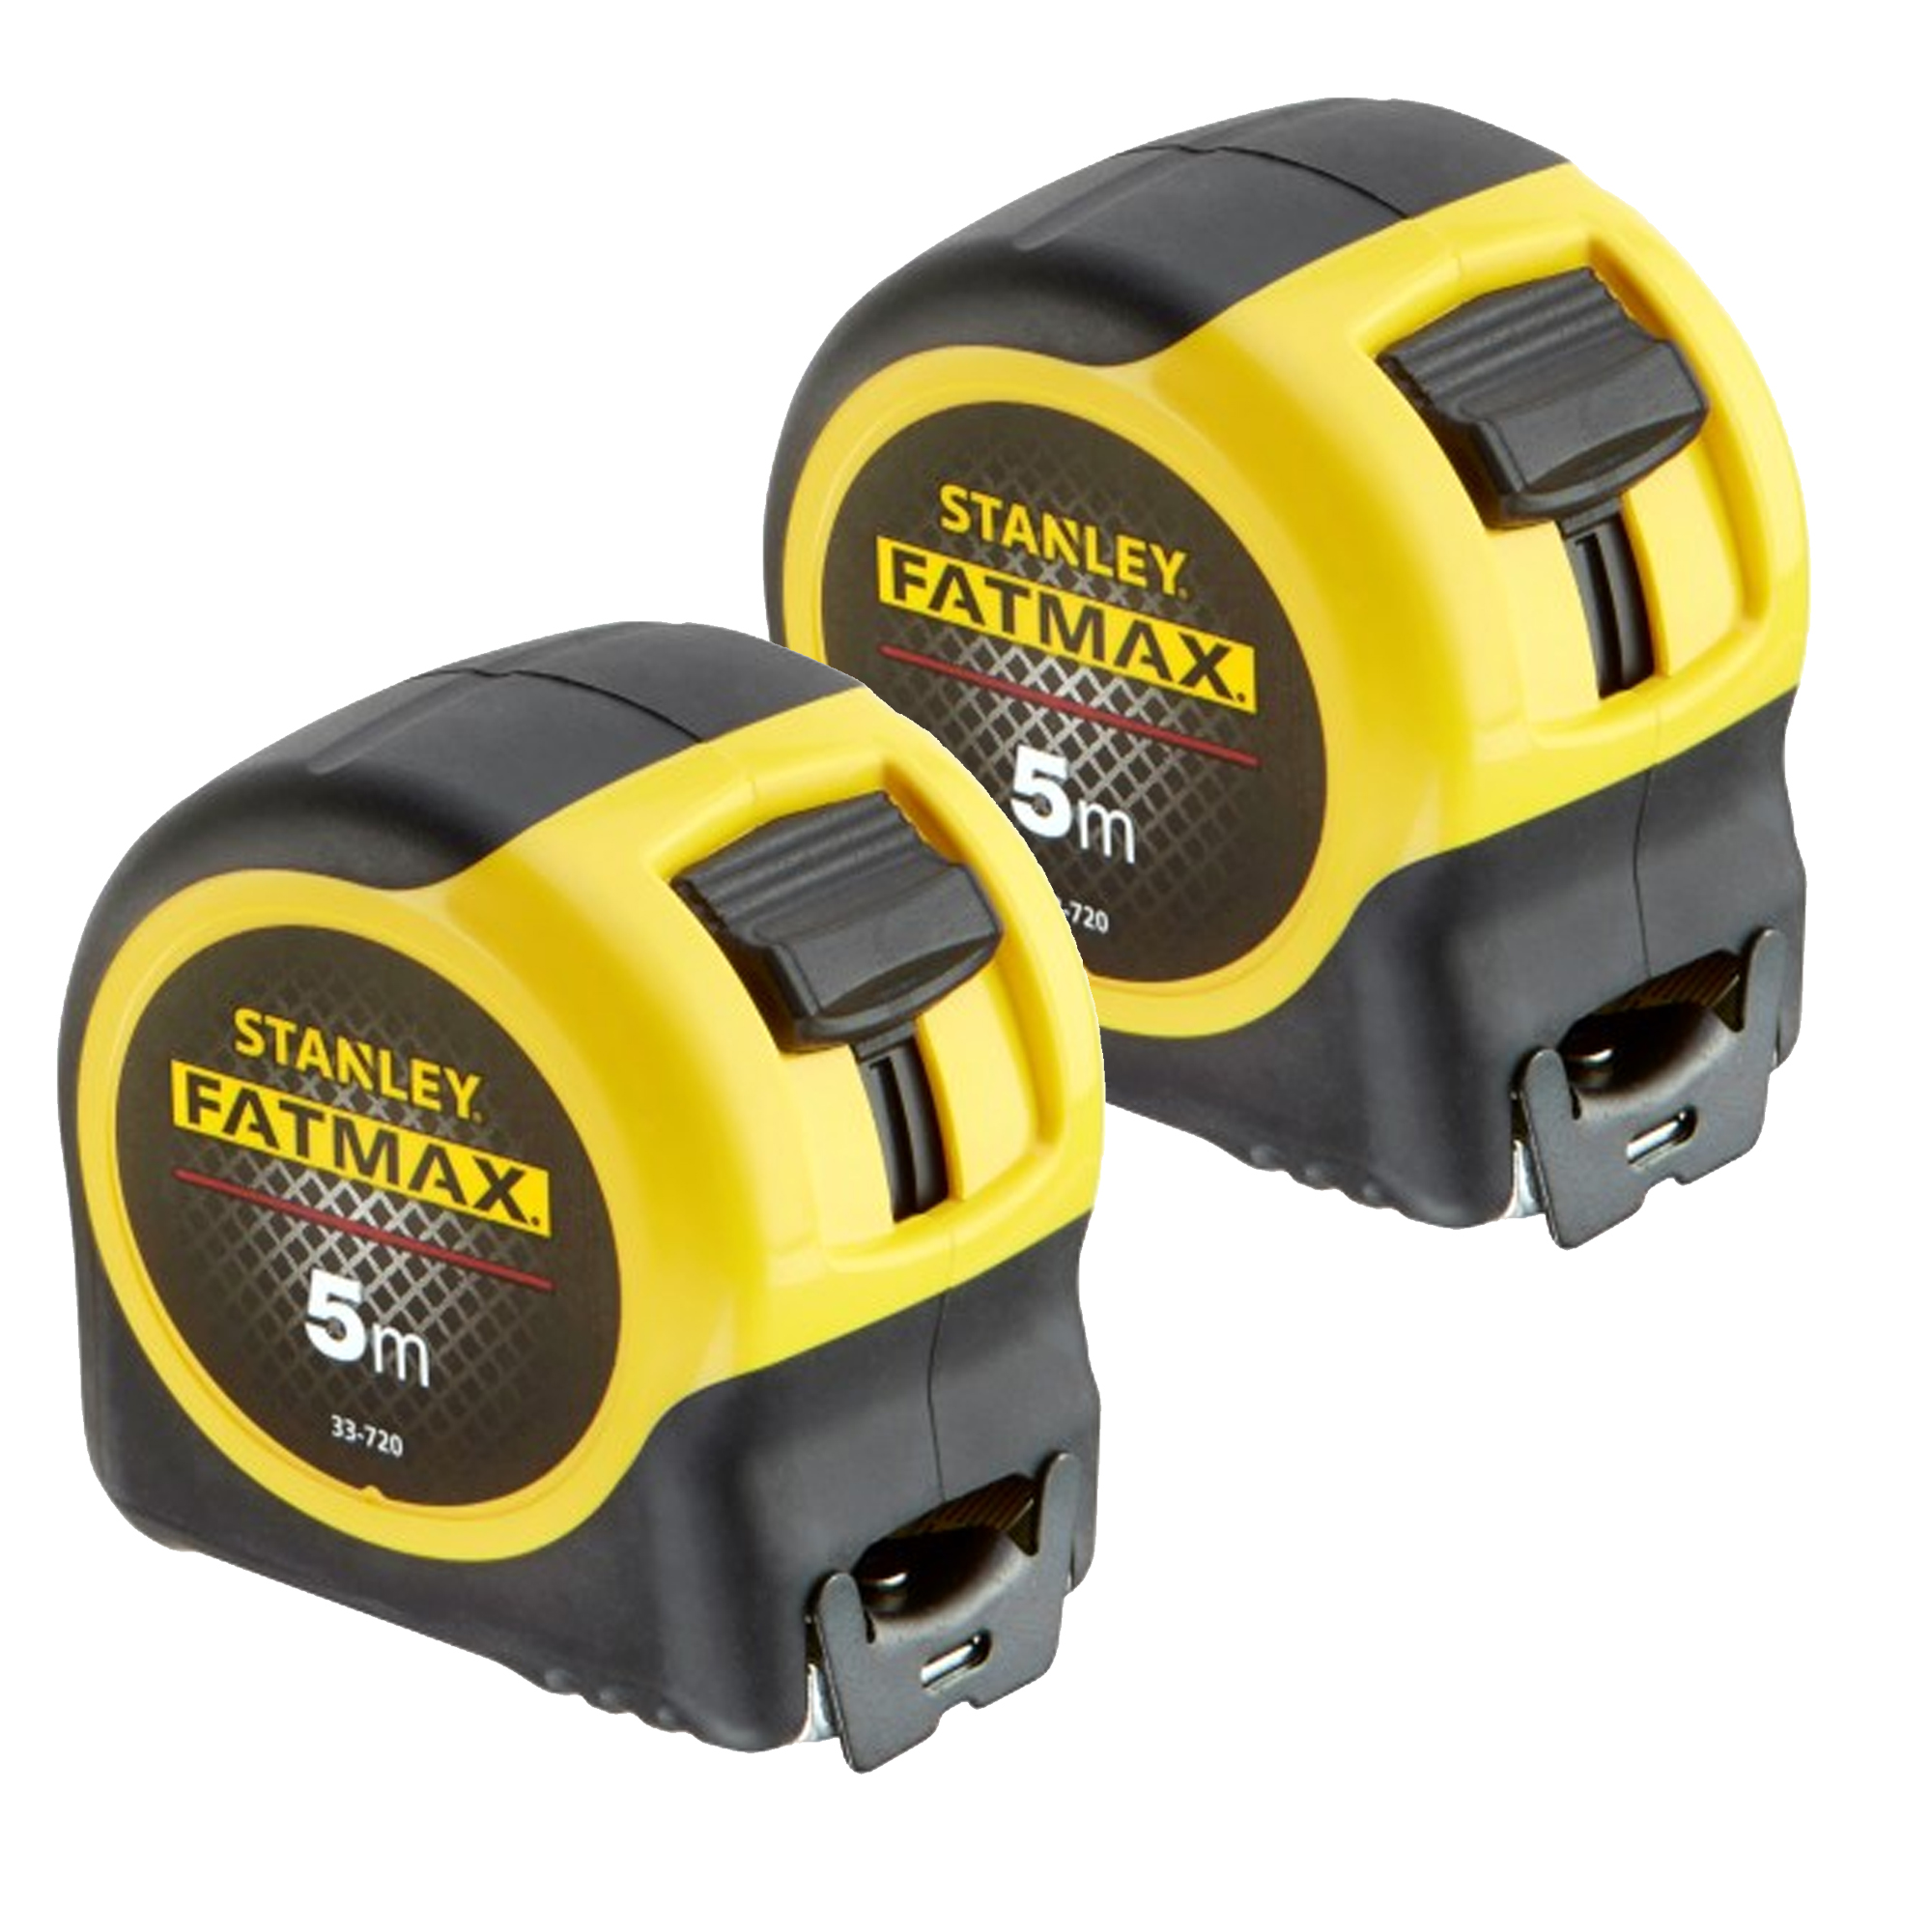 Fatmax tape measure 2 pack 30mm hex jackhammer bits